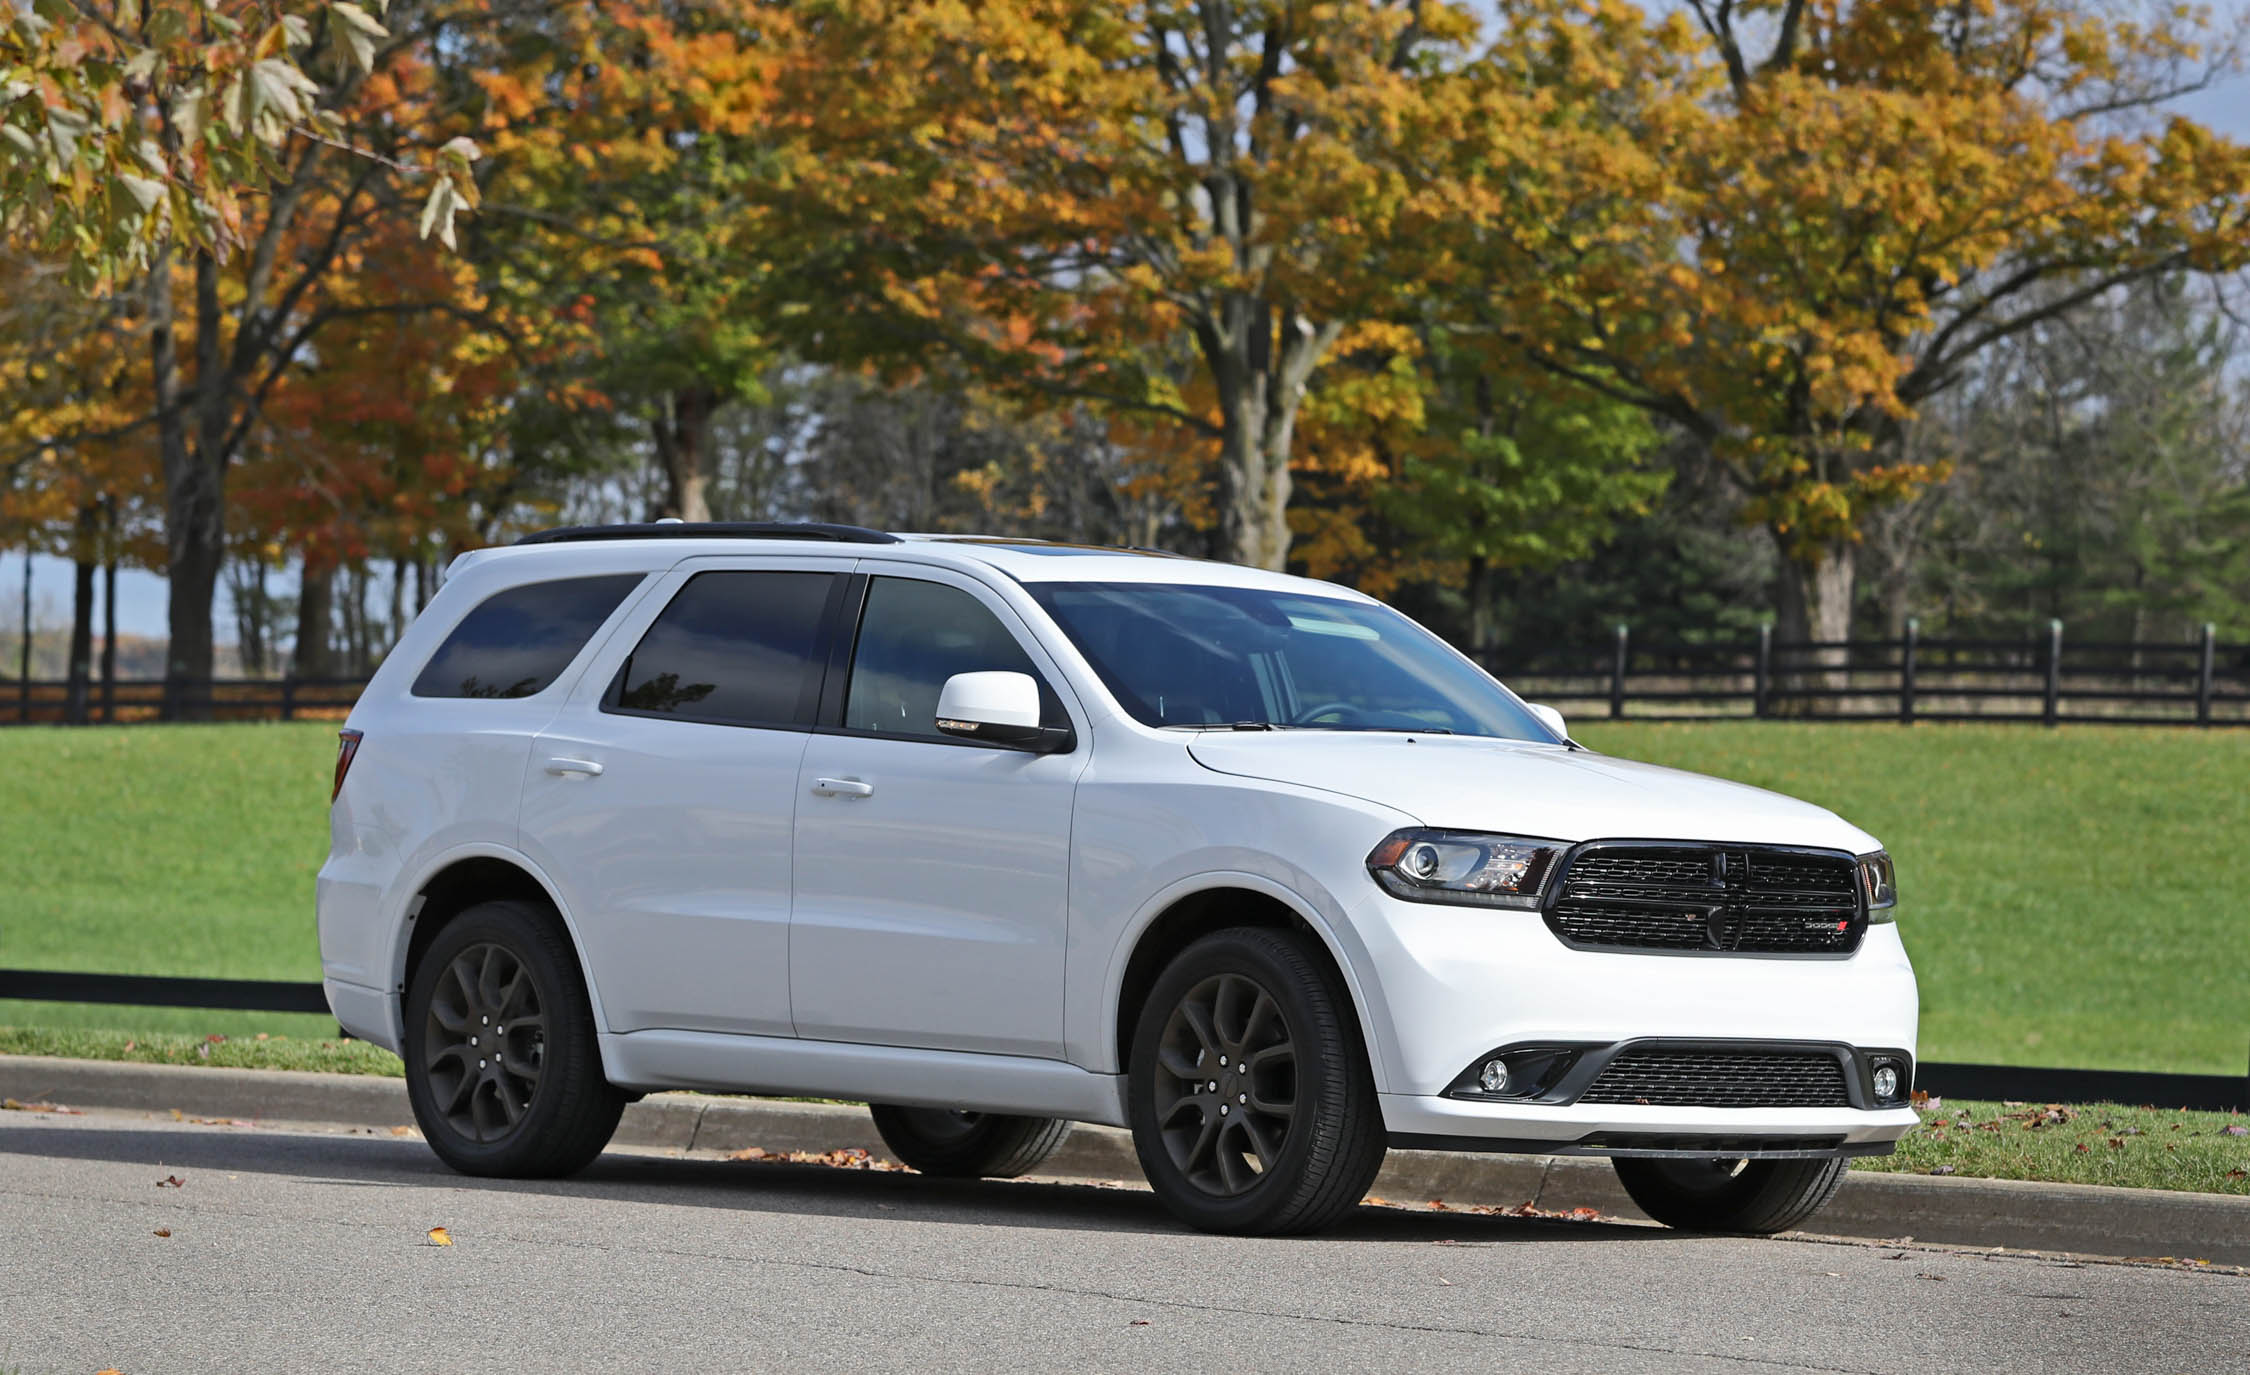 2017 Dodge Durango GT AWD (Photo 11 of 12)